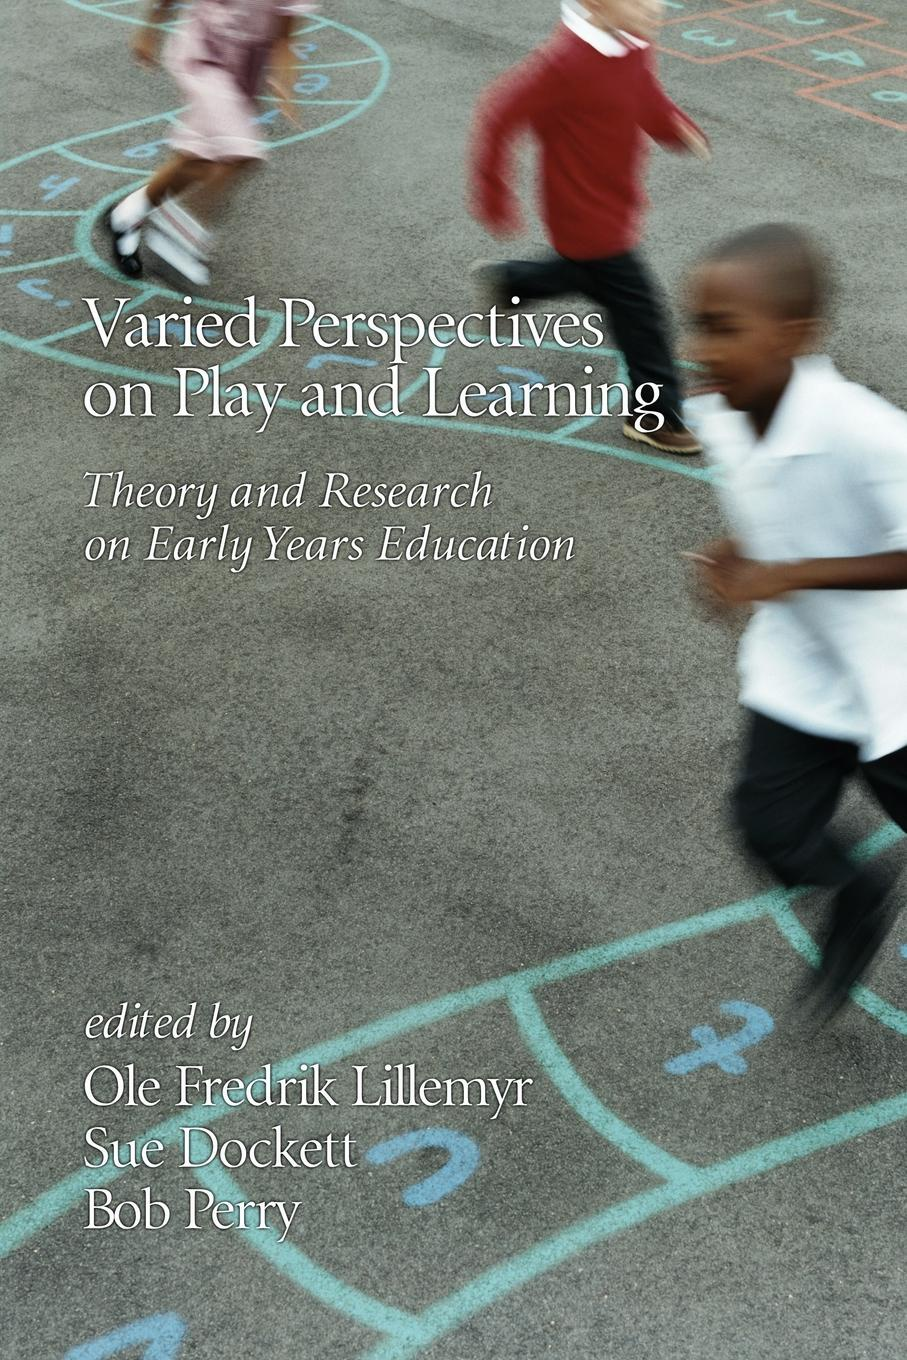 Varied Perspectives on Play and Learning. Theory and Research on Early Years Education sreeraman ponson play and movement approach on biomotor abilities and psychomotor skill